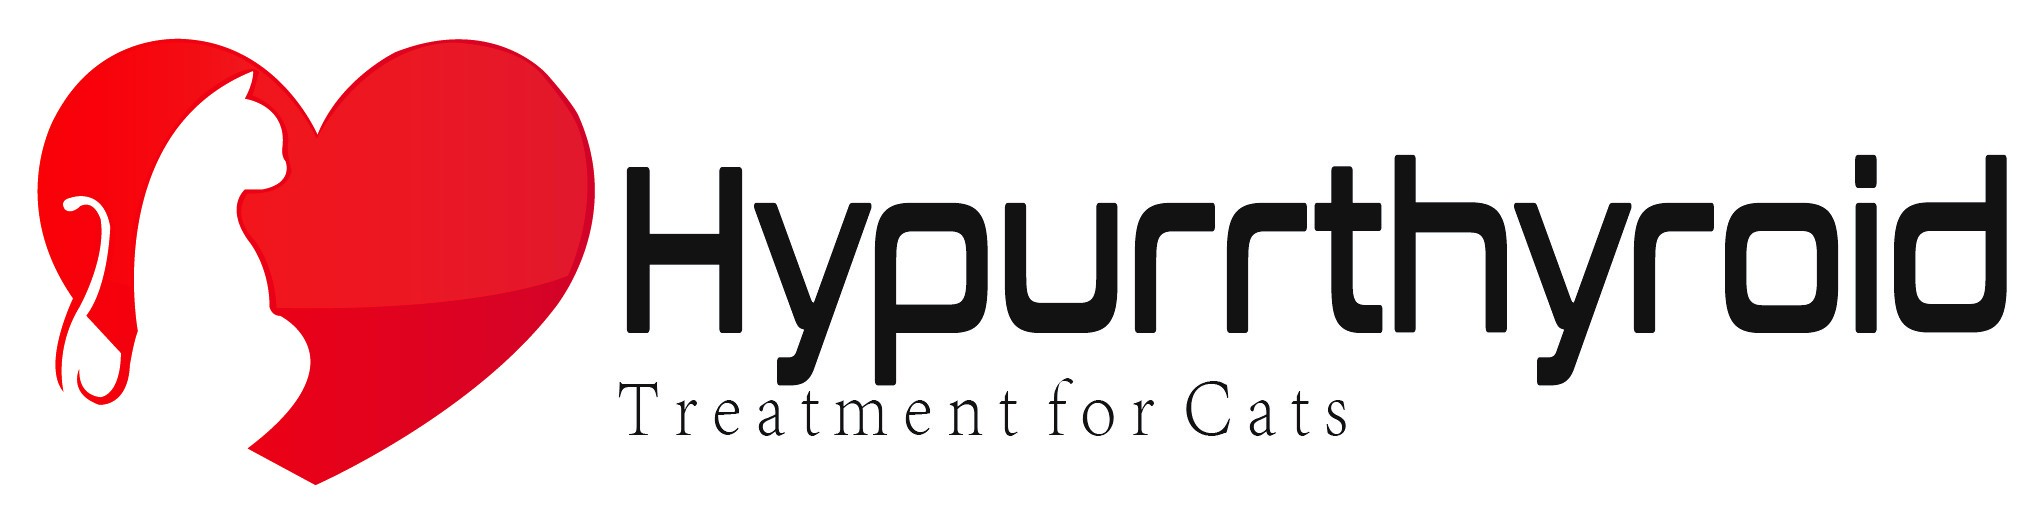 Hypurrthyroid Treatment for Cats